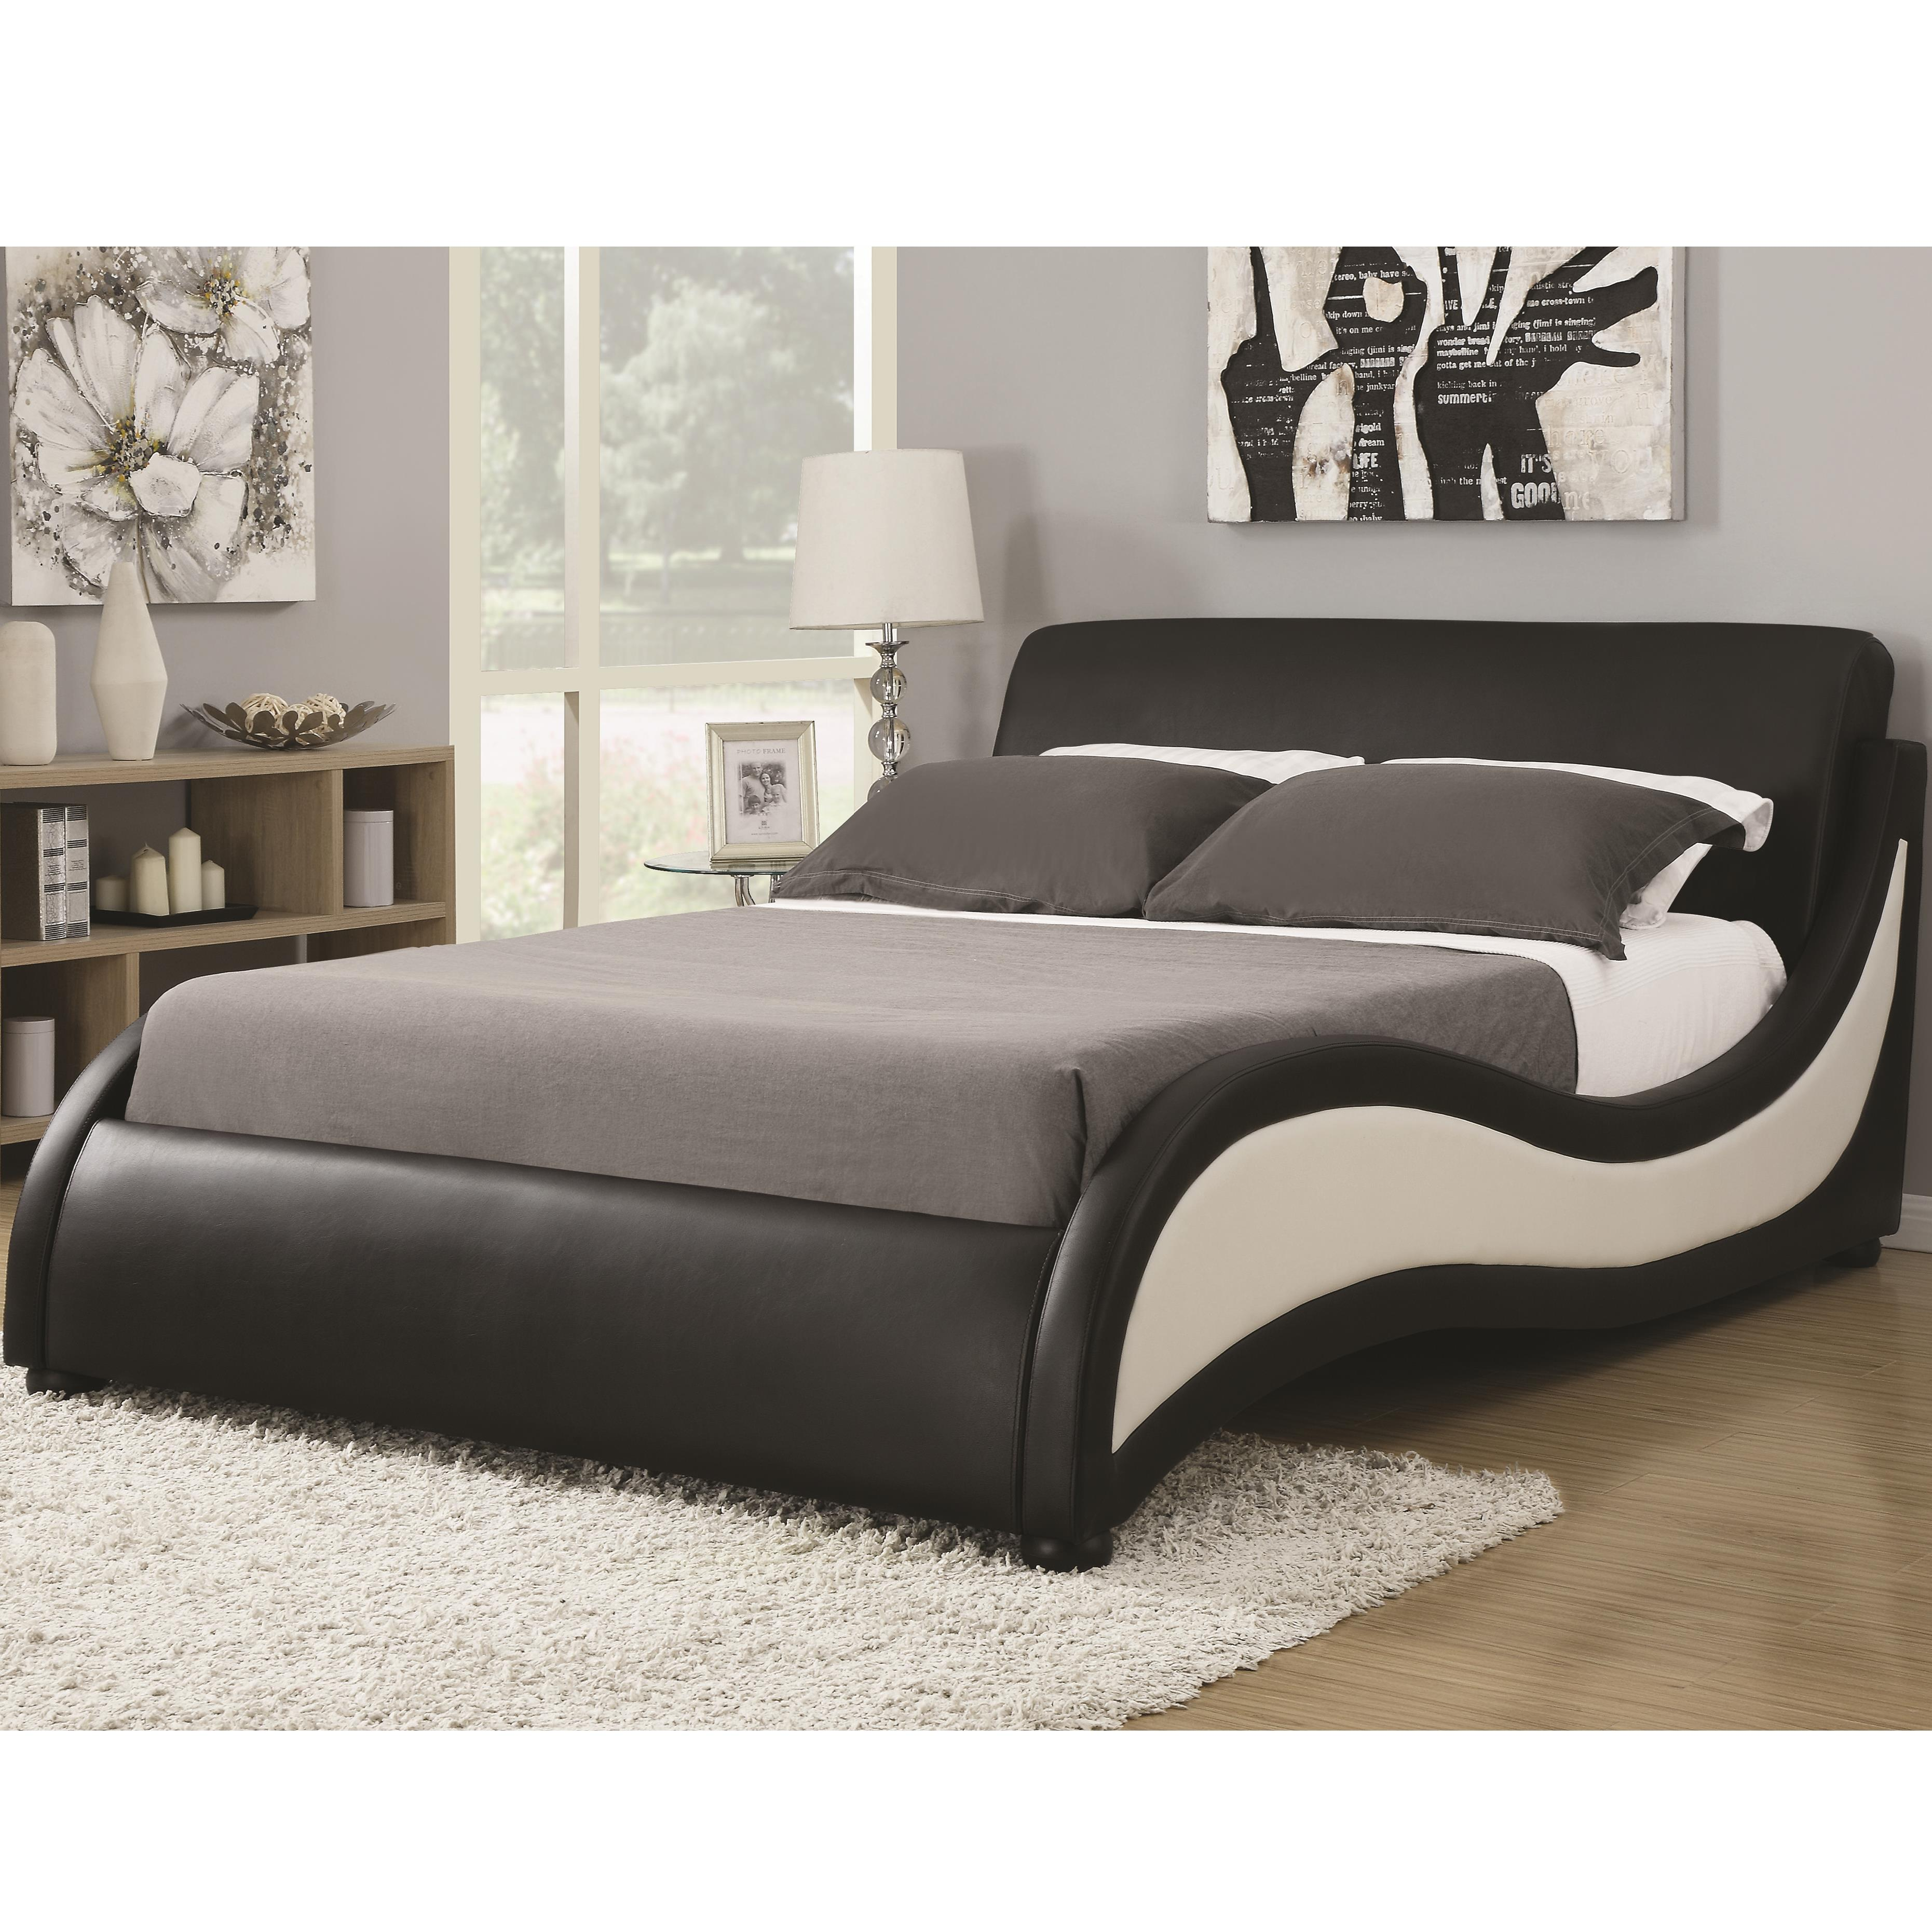 king niguel modern contemporary platform upholstered bed quality furniture at affordable. Black Bedroom Furniture Sets. Home Design Ideas